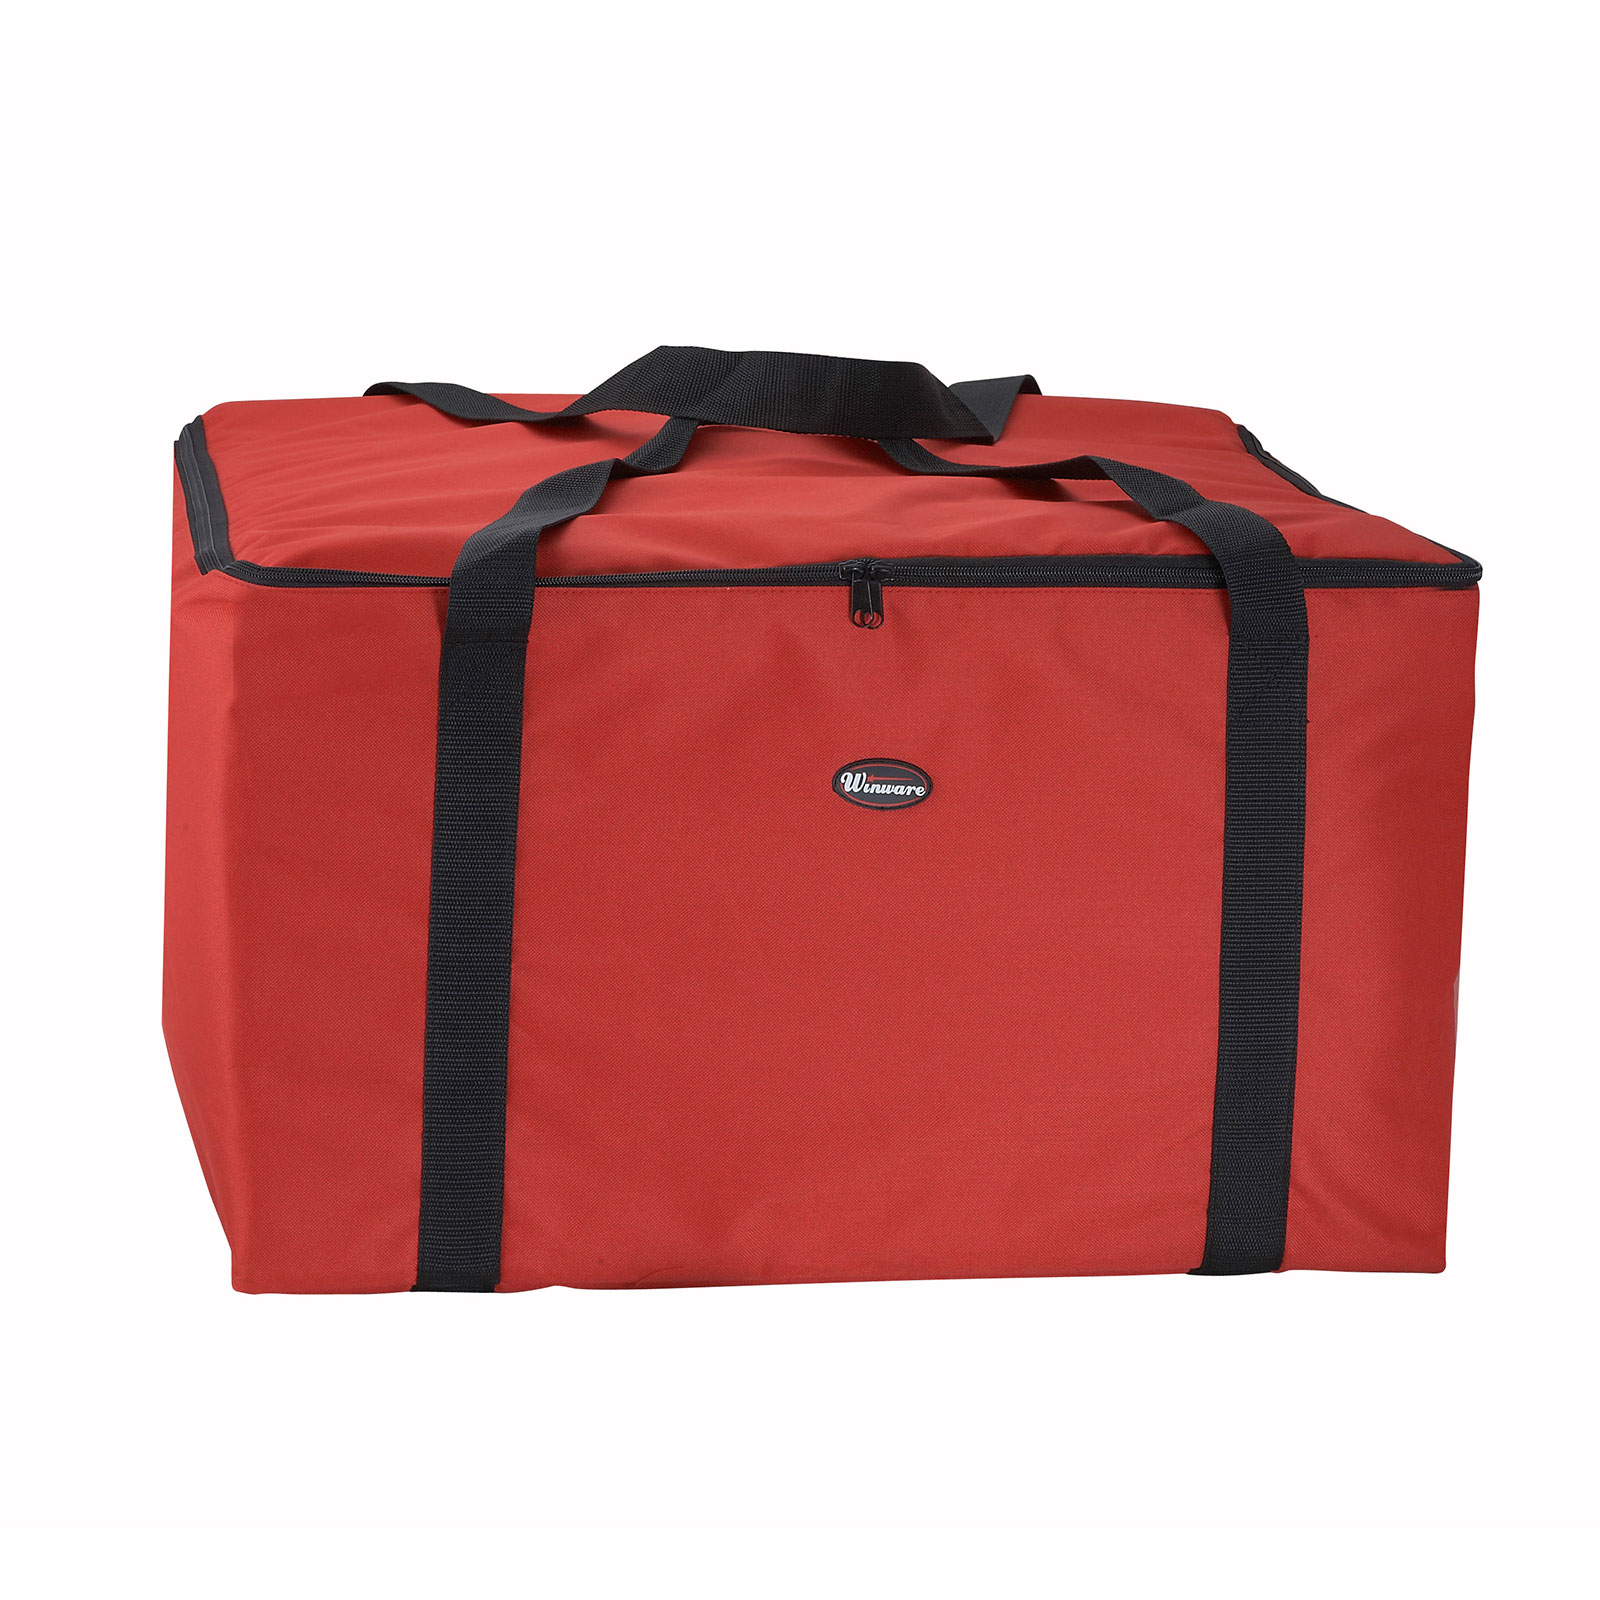 2100-11 Winco BGDV-22 food carrier, soft material